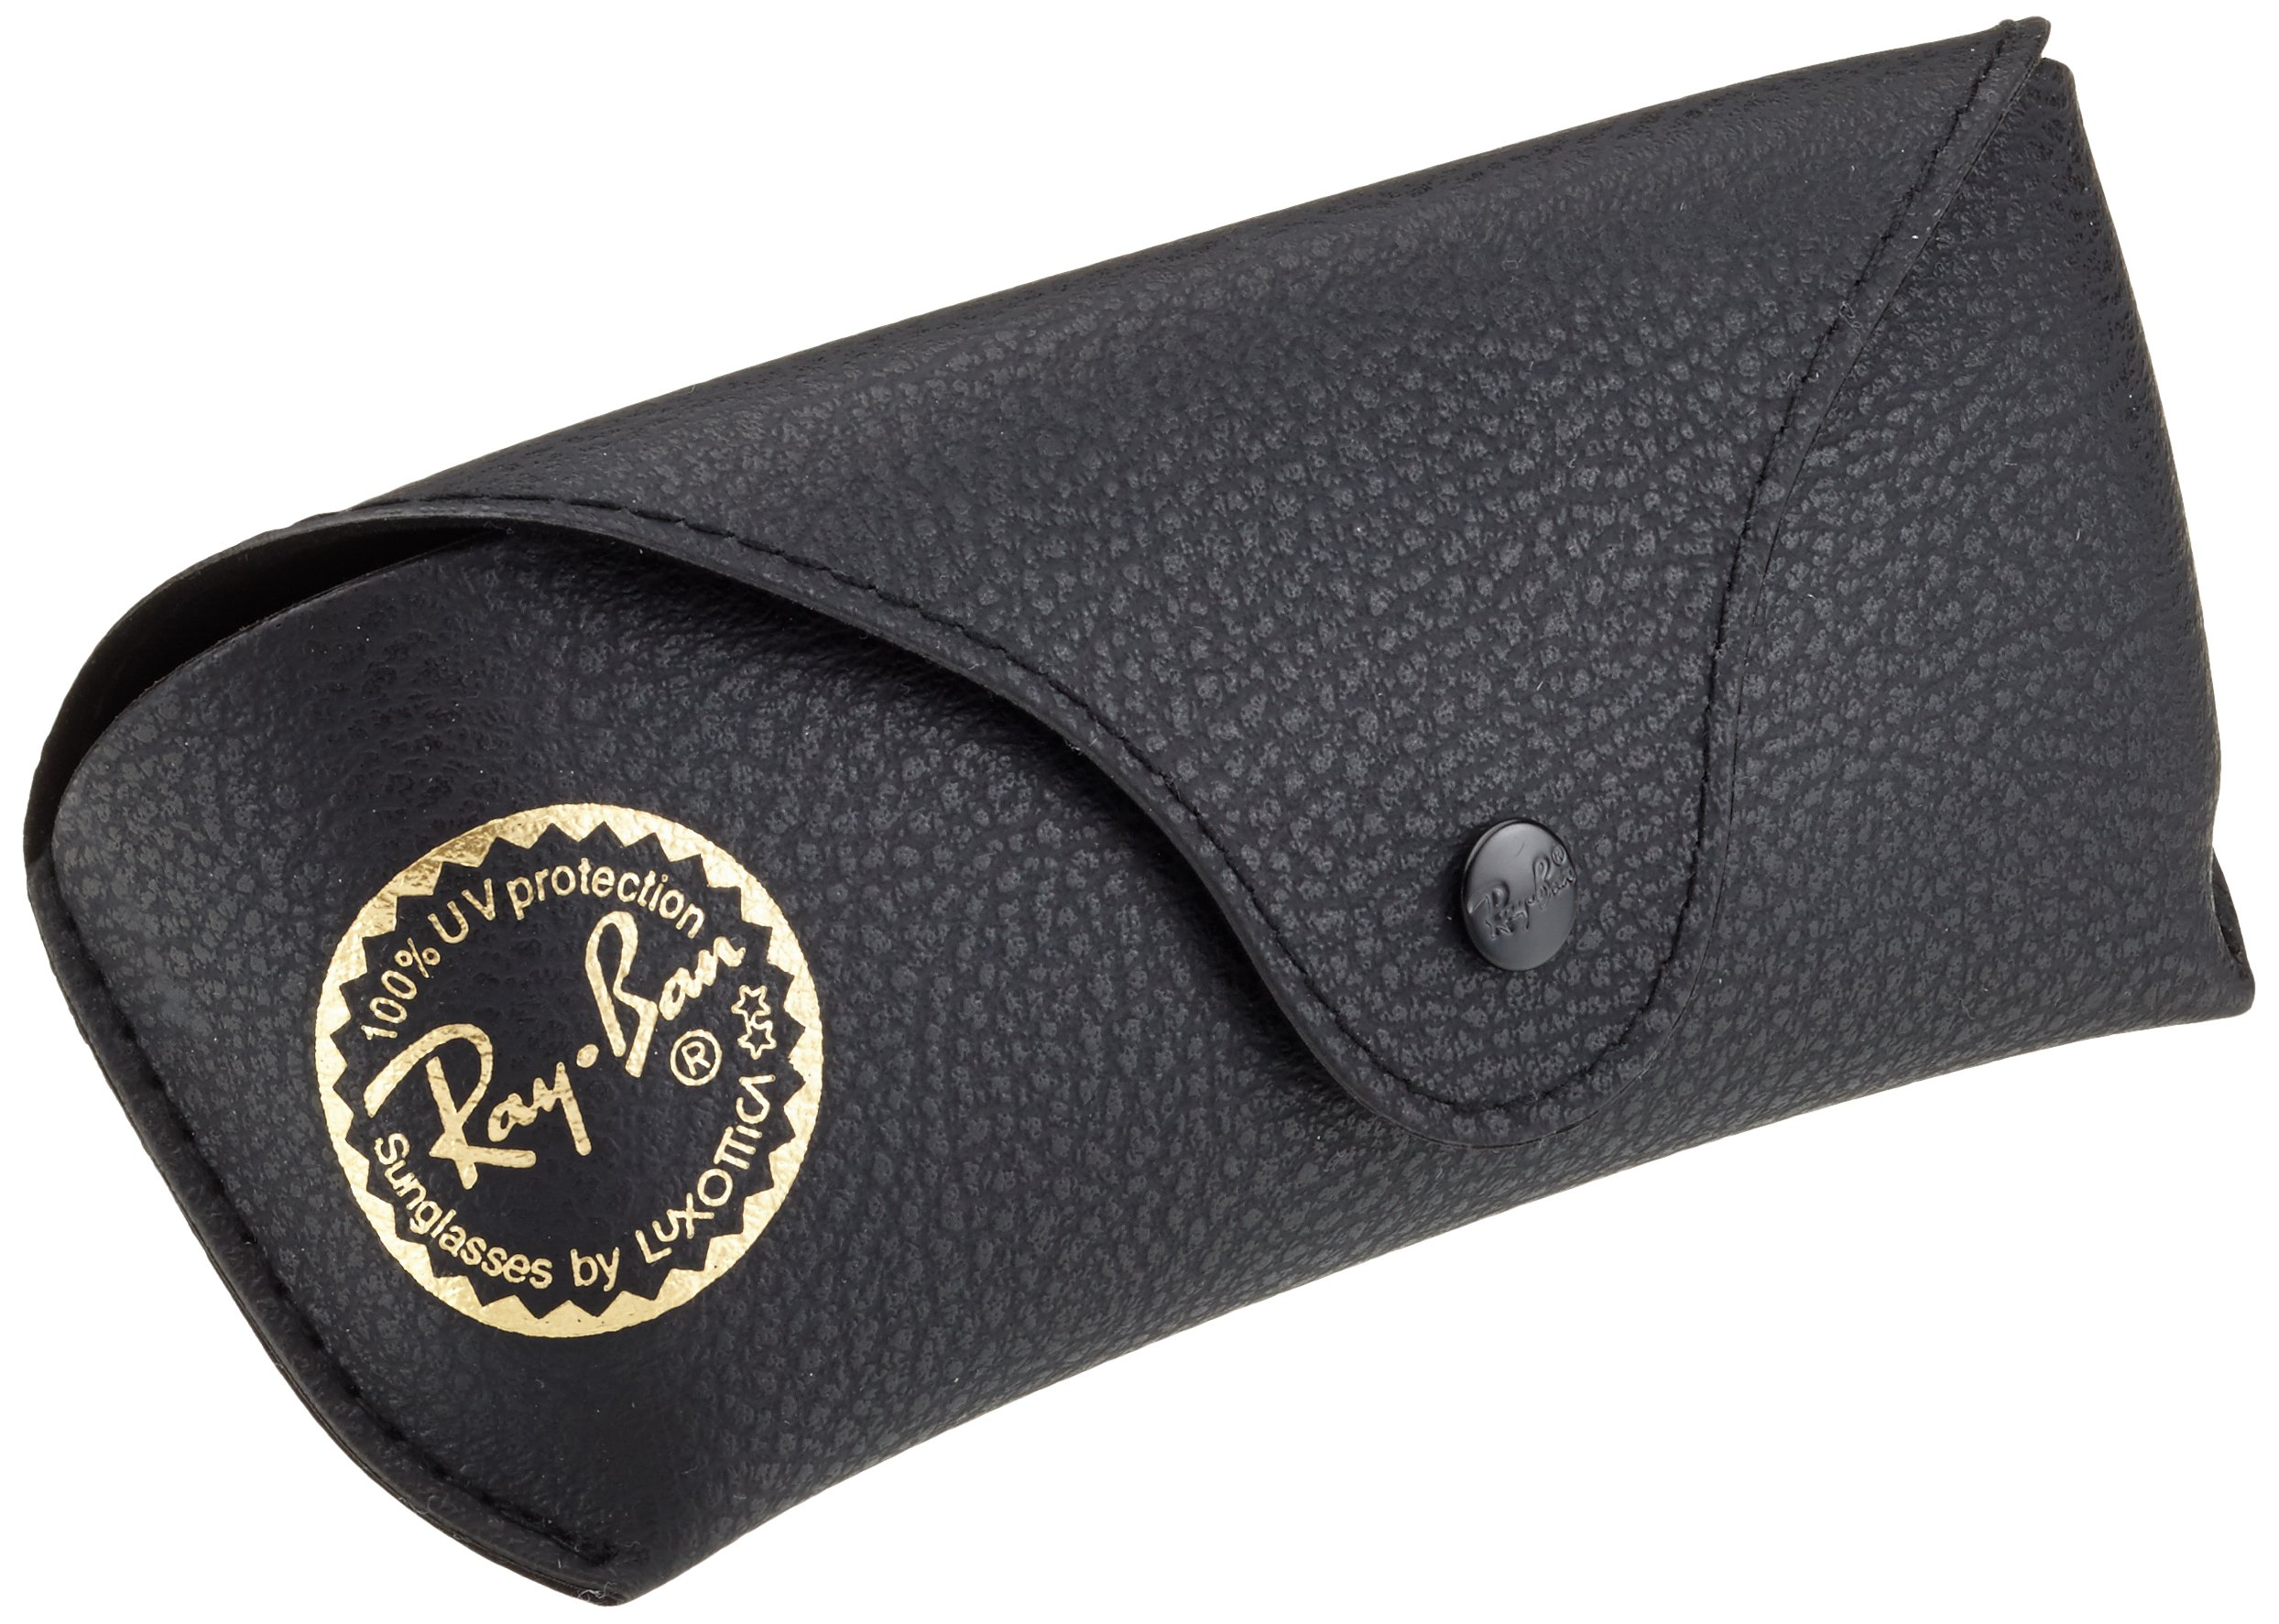 Ray-Ban 3025 Aviator Large Metal Non-Mirrored Polarized Sunglasses, Gold/Green, 55mm by Ray-Ban (Image #6)